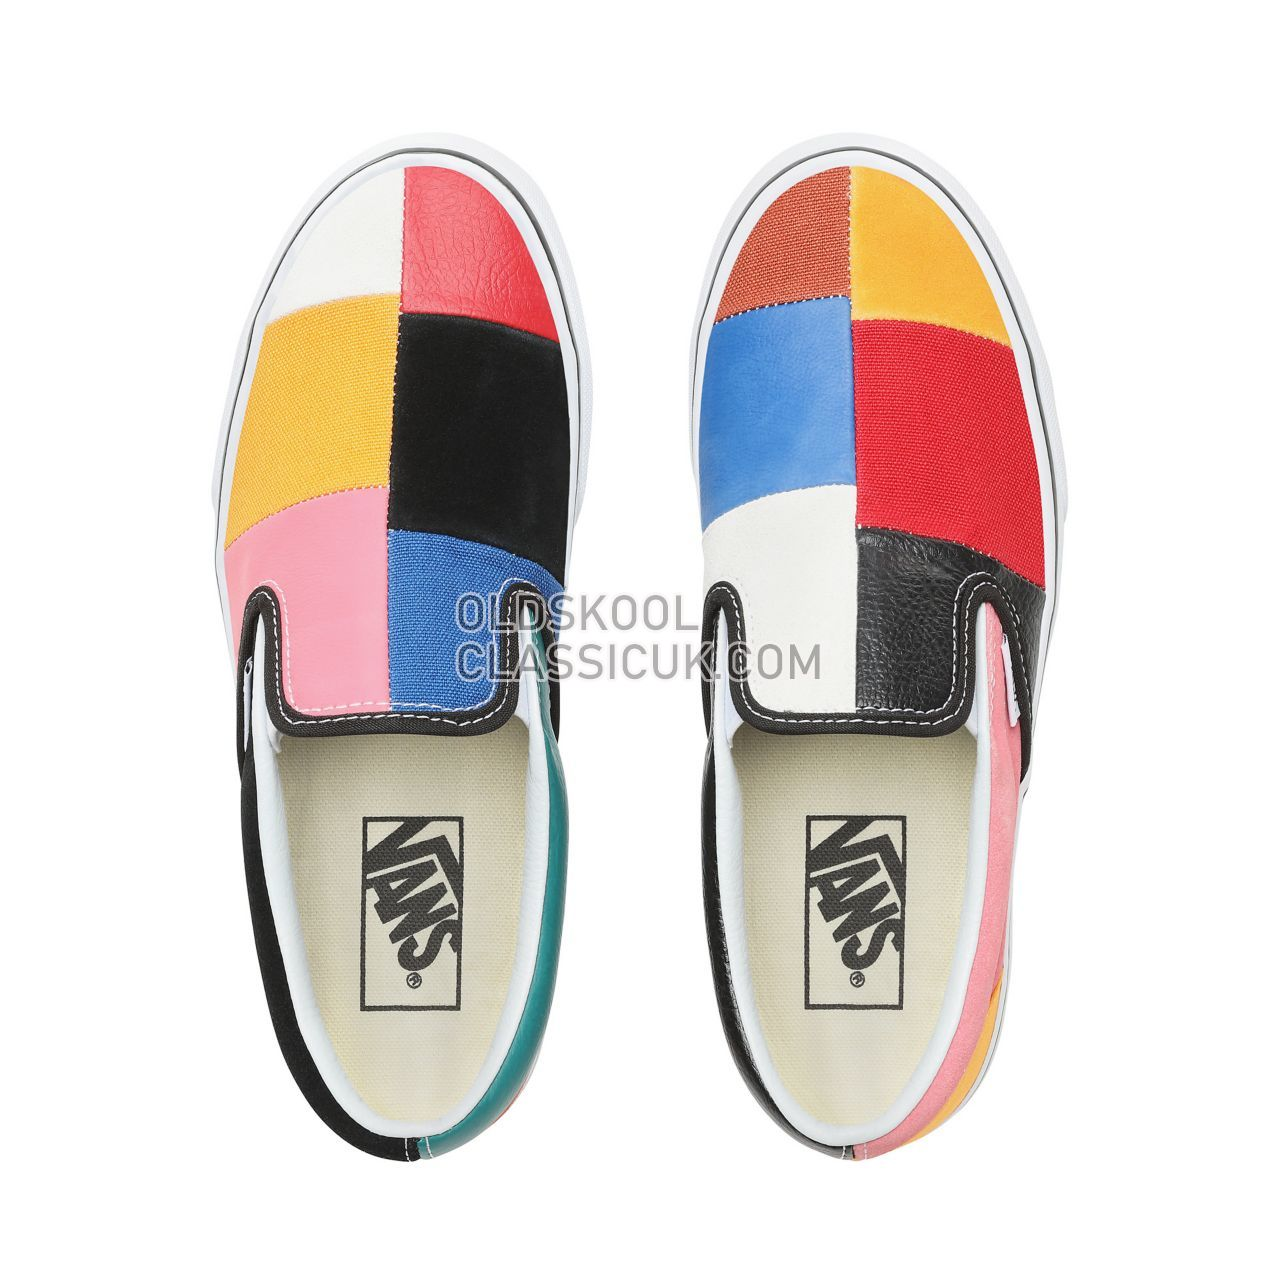 Vans Patchwork Slip-On Sneakers Womens (Patchwork) Multi/True White VN0A38F7VMF Shoes